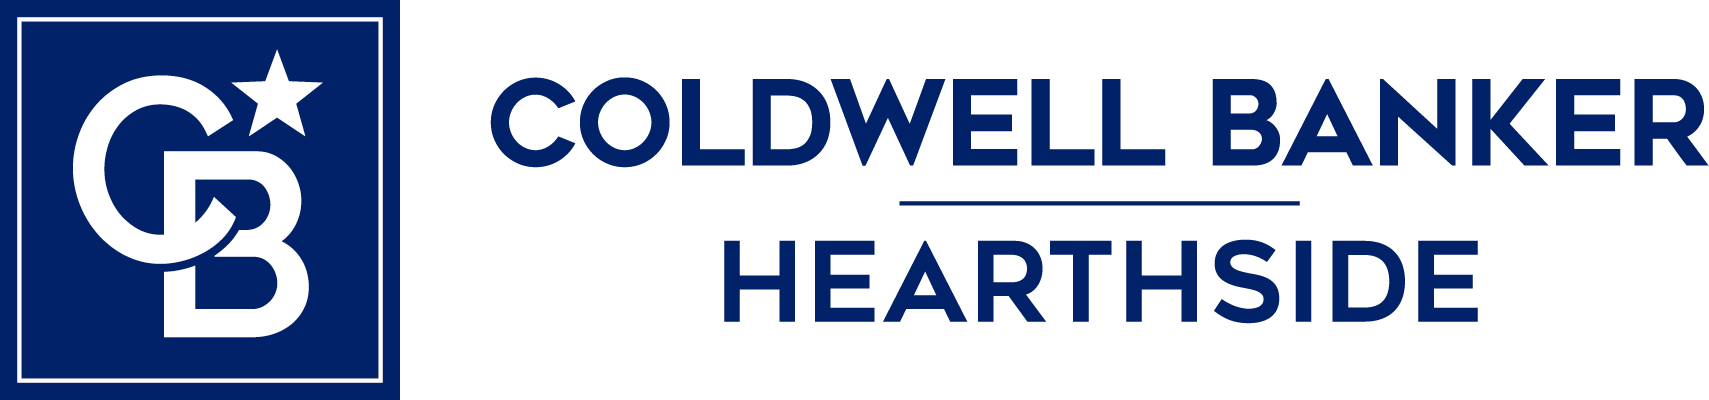 Scott Freeman - Coldwell Banker Hearthside Logo